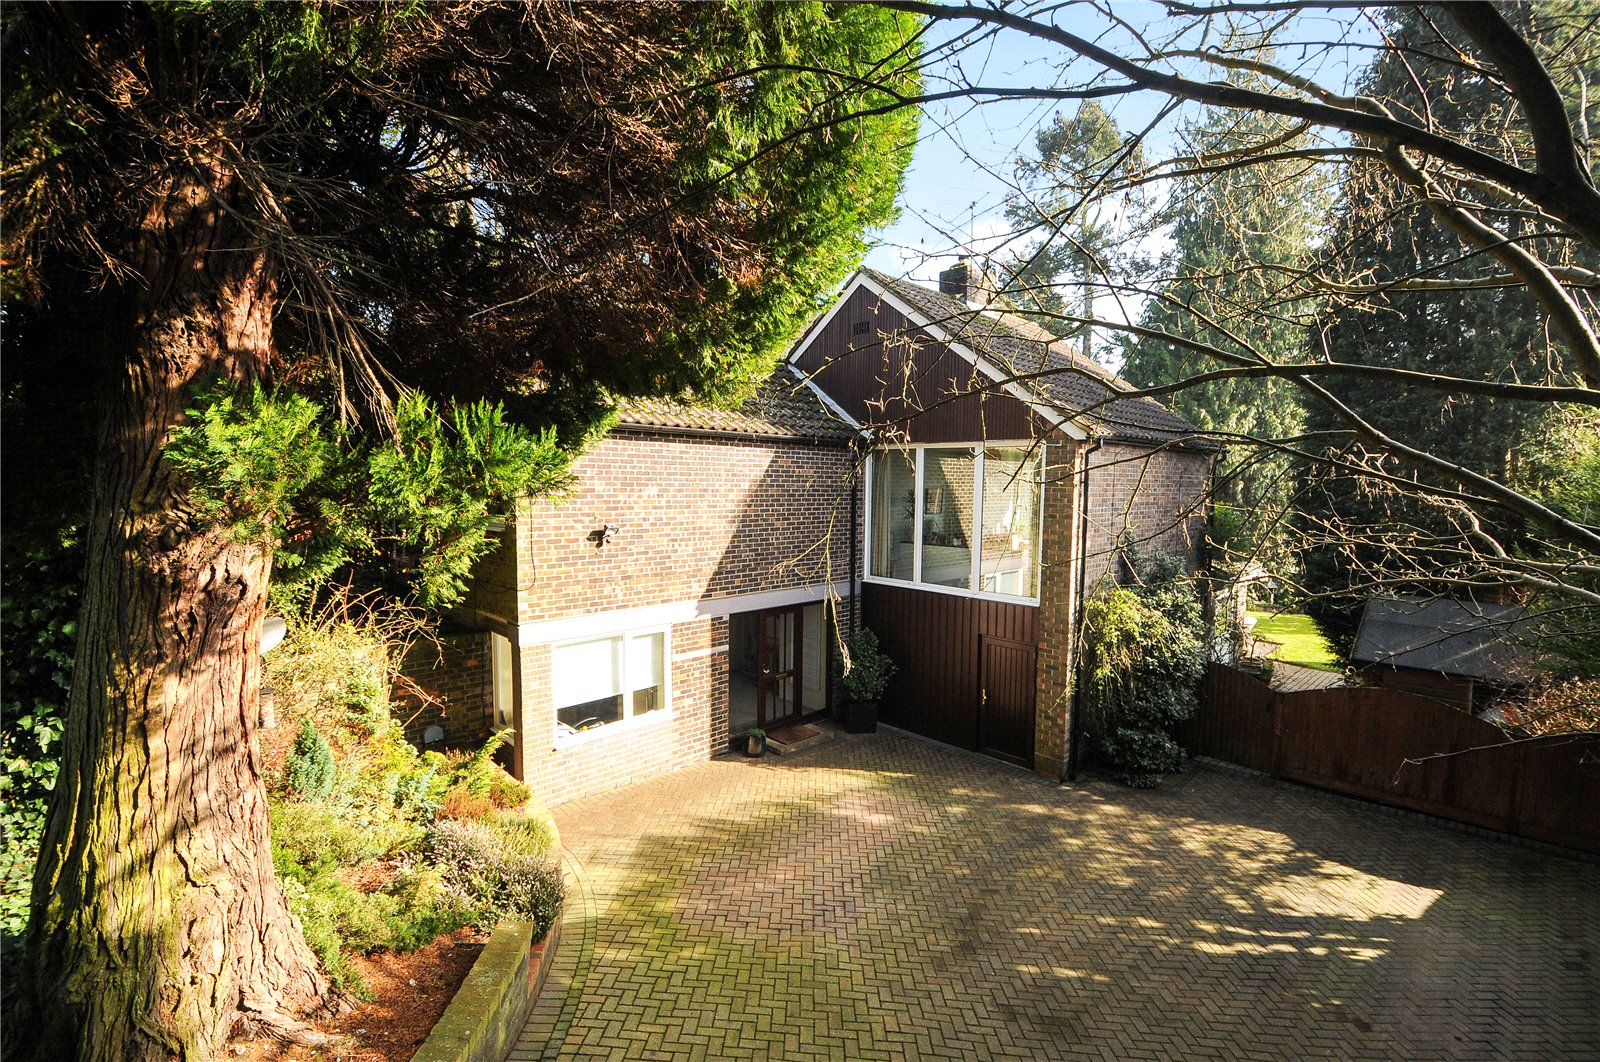 4 Bedrooms Detached House for sale in Grange Road, Camberley, Surrey, GU15